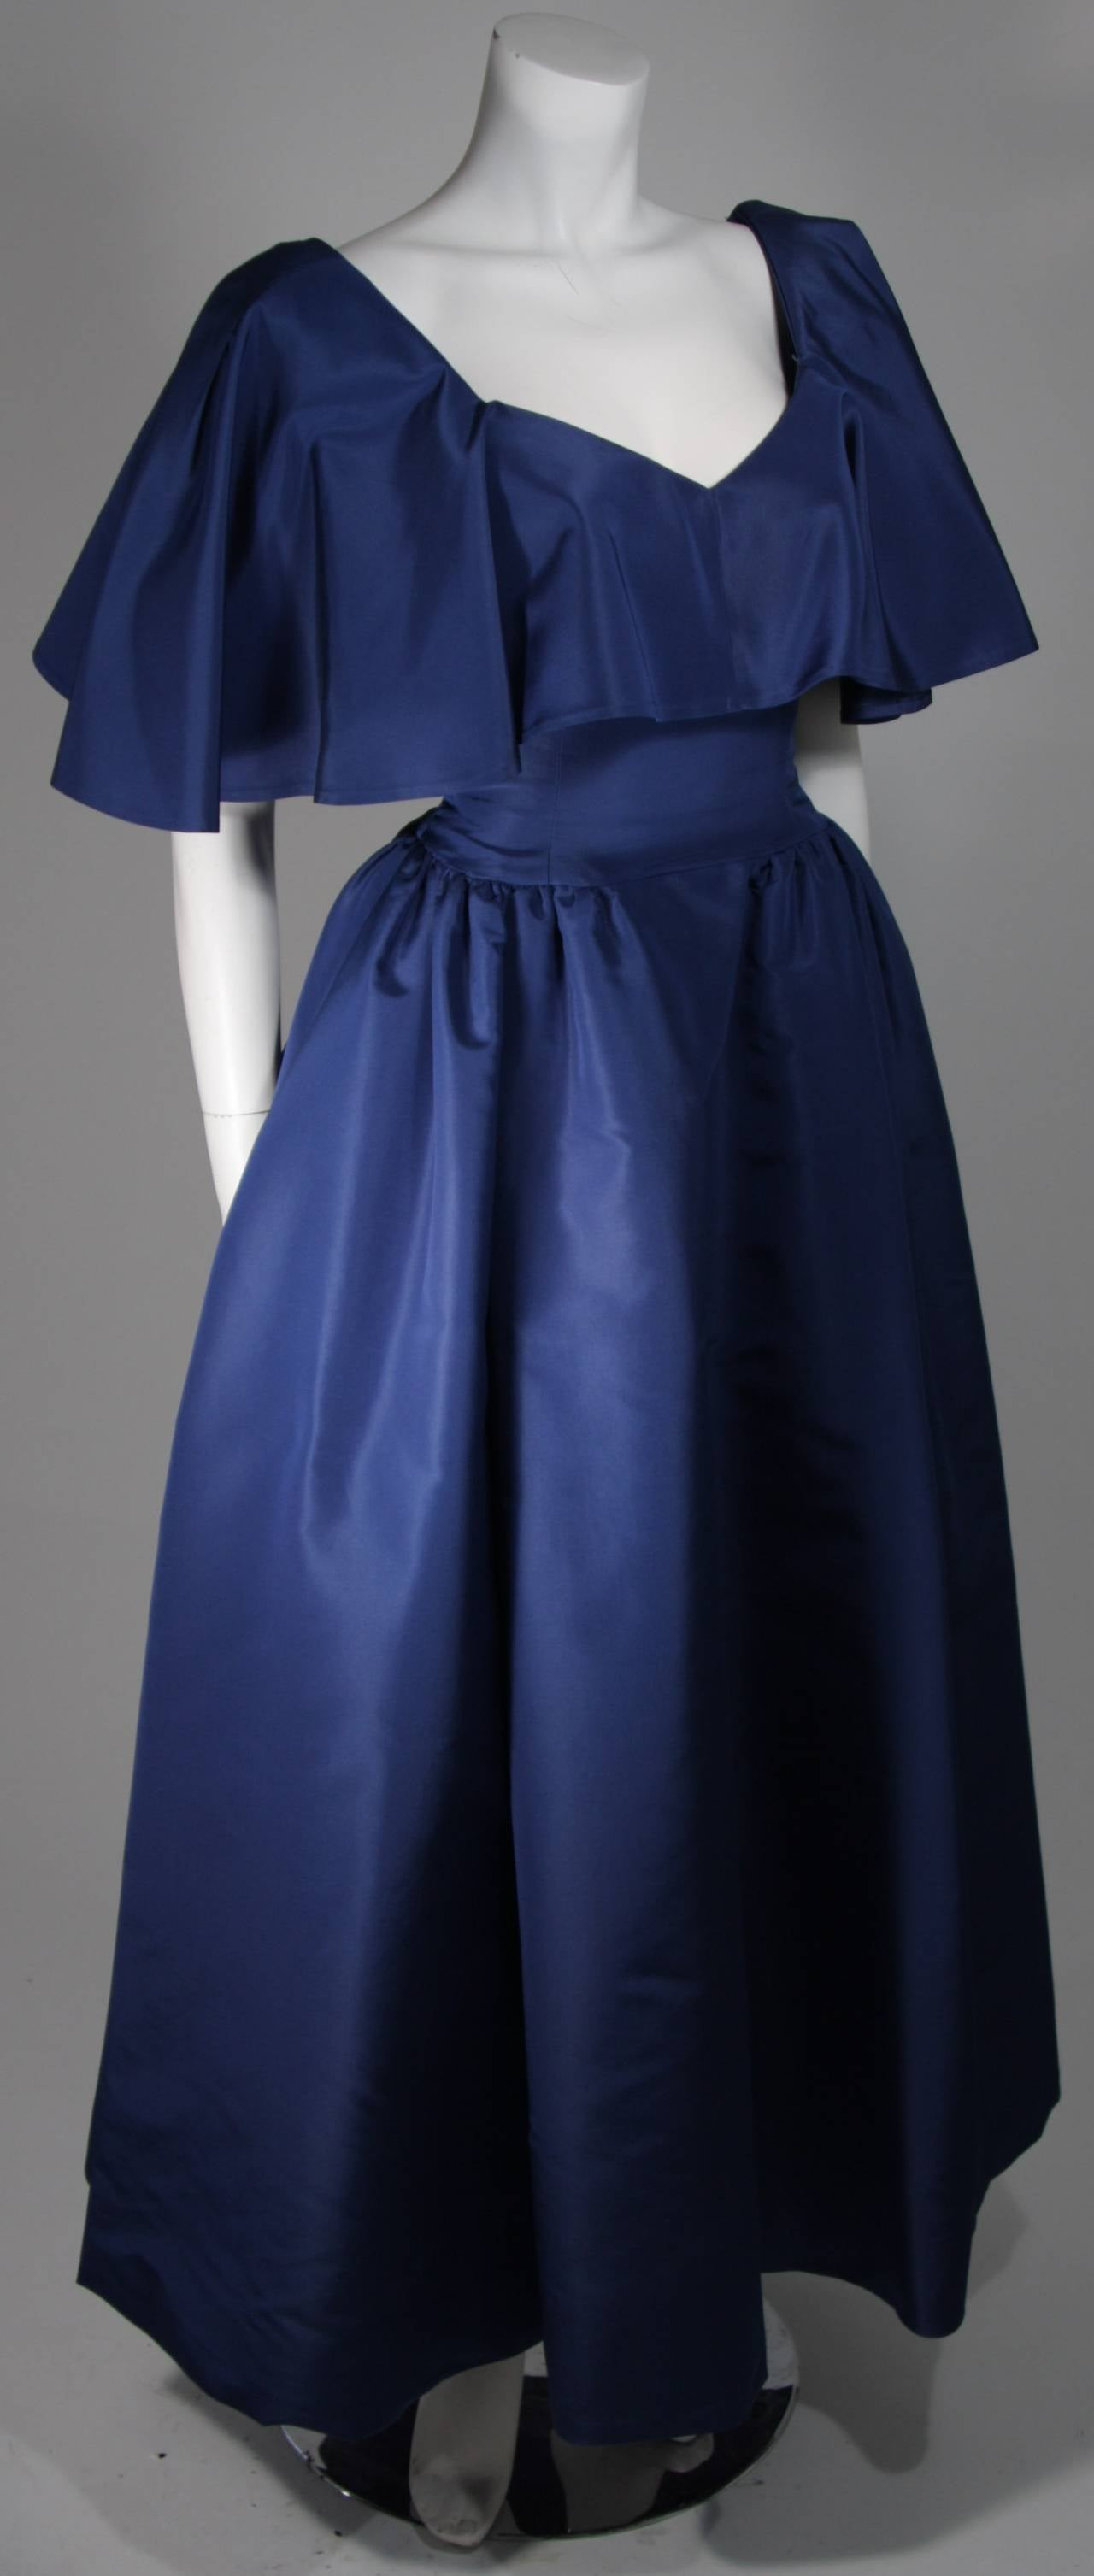 Circa 1980s Pauline Trigere Midnight Blue Faille Ball Gown with Cape Collar 6 4